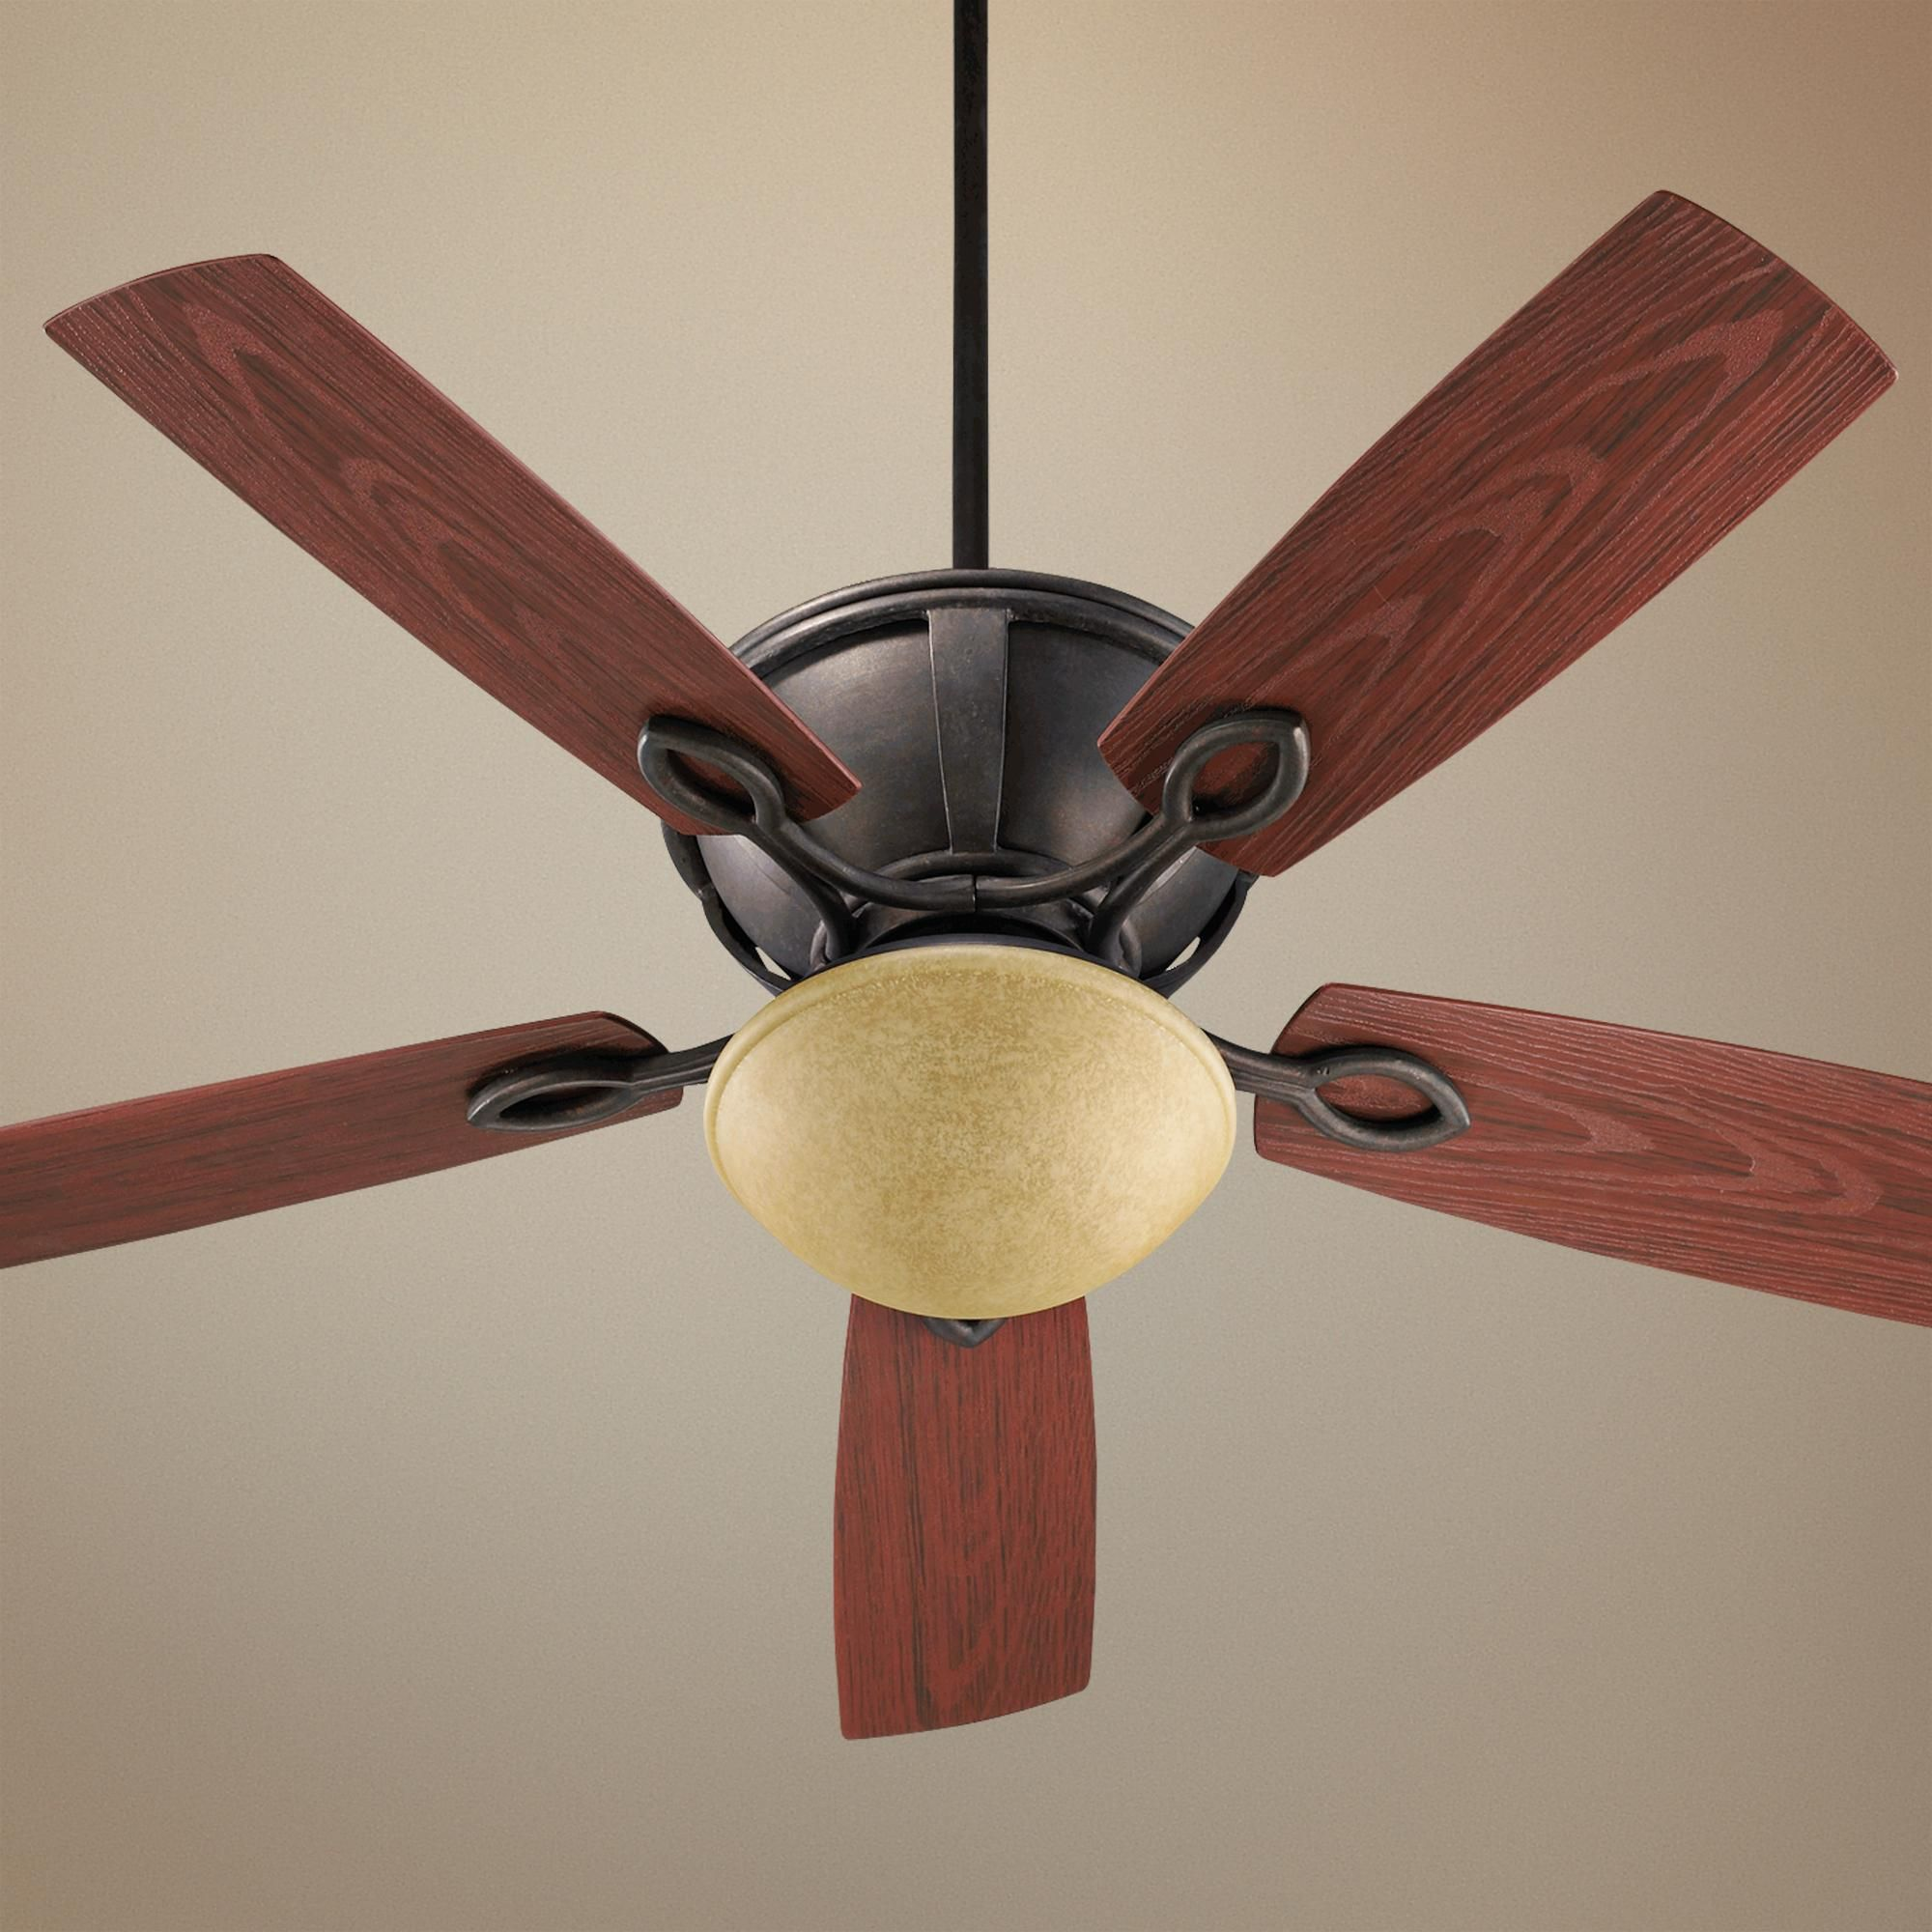 52 Quorum Stanton Sienna Patio Ceiling Fan With Light Kit